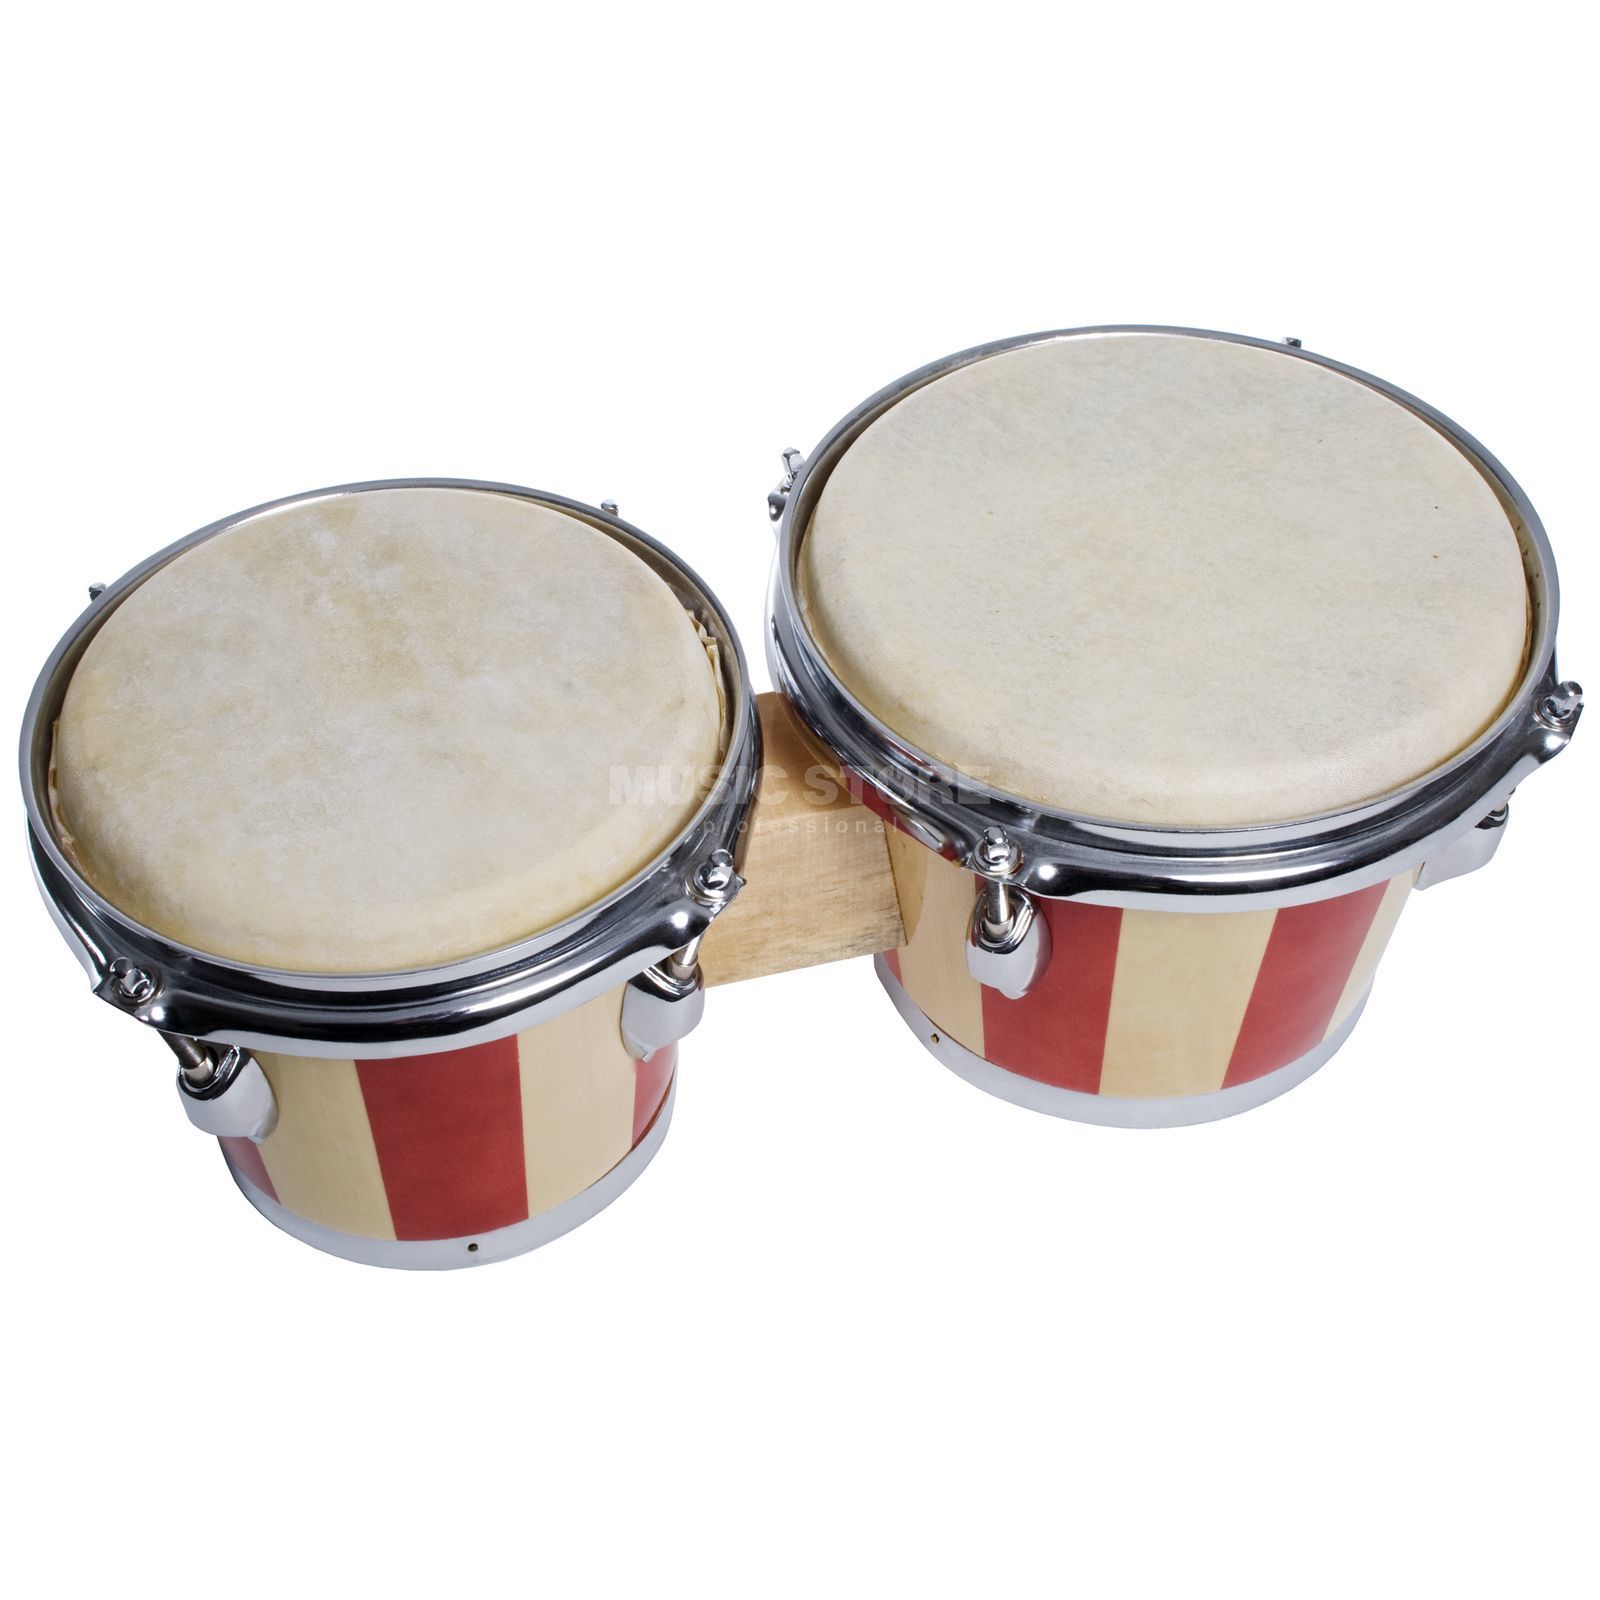 "Fame DB-105 Bongos 7"" + 8"", Natural + Red Stripes Изображение товара"